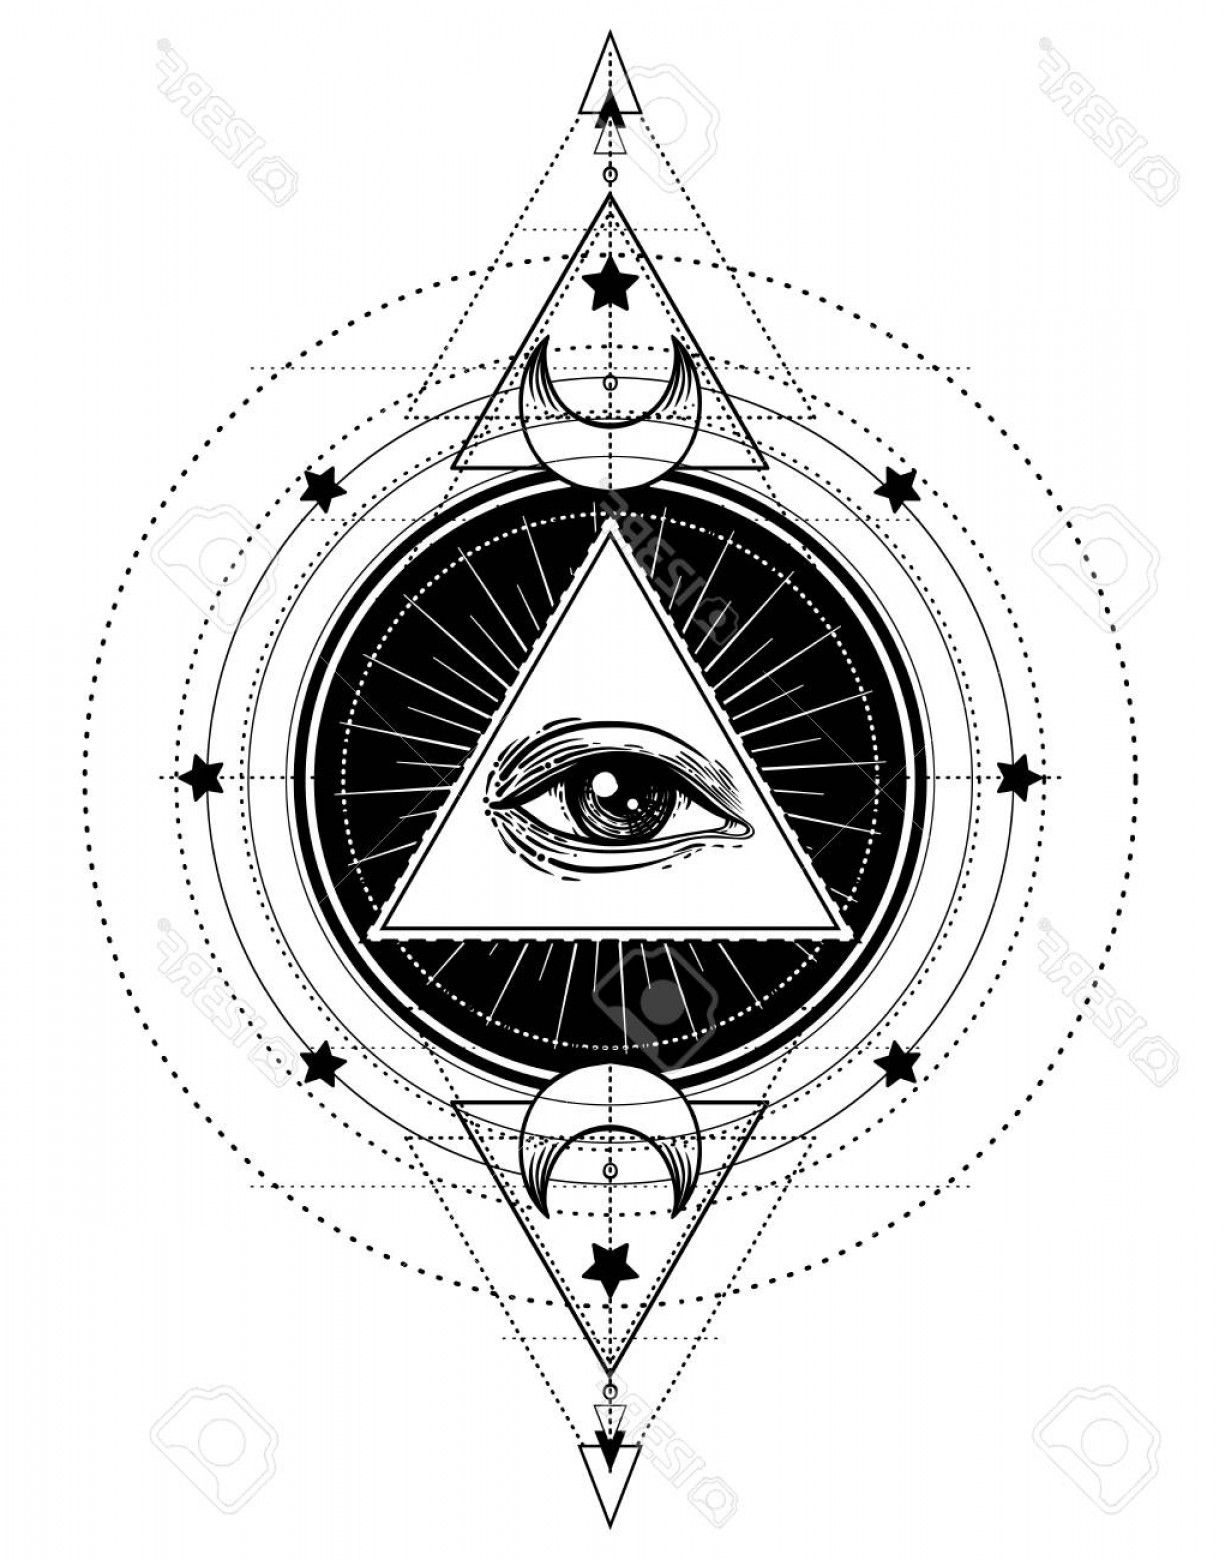 Pyramid With Eye Of Providence Vector: Photostock Vector Blackwork Tattoo Flash Eye Of Providence Masonic Symbol All Seeing Eye Inside Triangle Pyramid New W